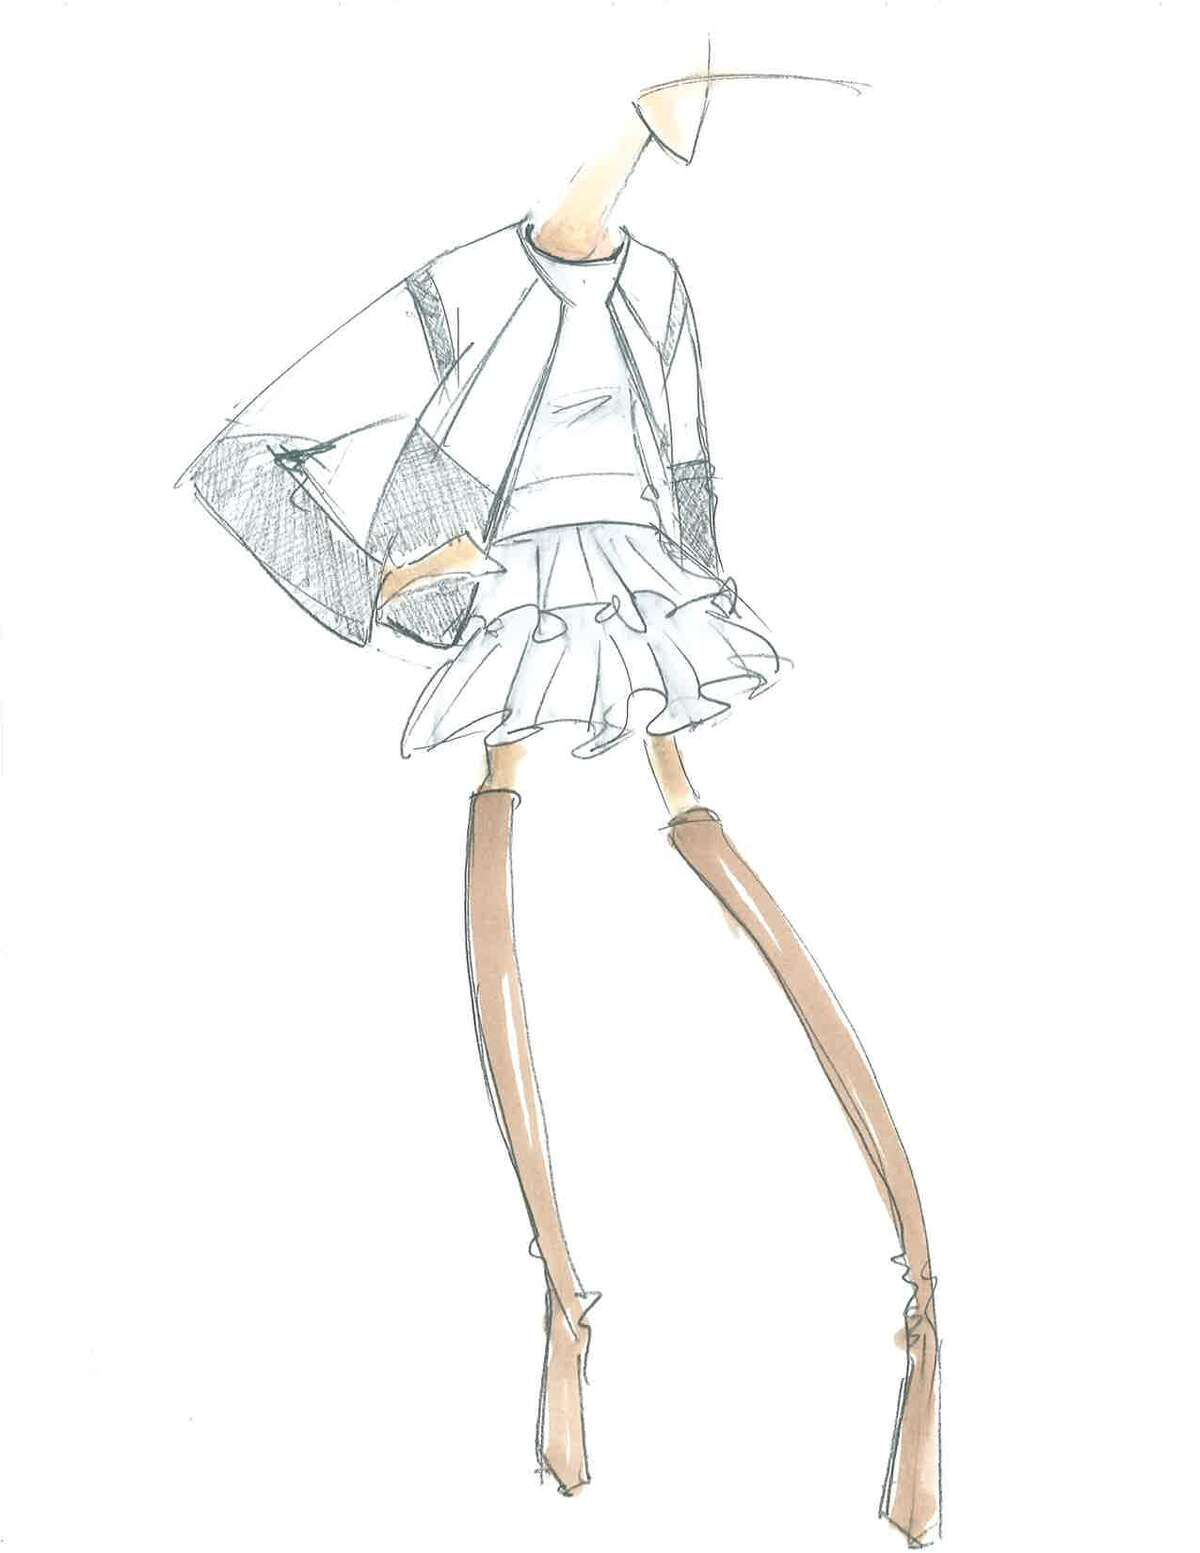 Lubov Azria, creative director of BCBG said she and her husband, designer Max Azria will use embroidered textures, prints and rich colors for their fall 2015 collection. She said the collection is